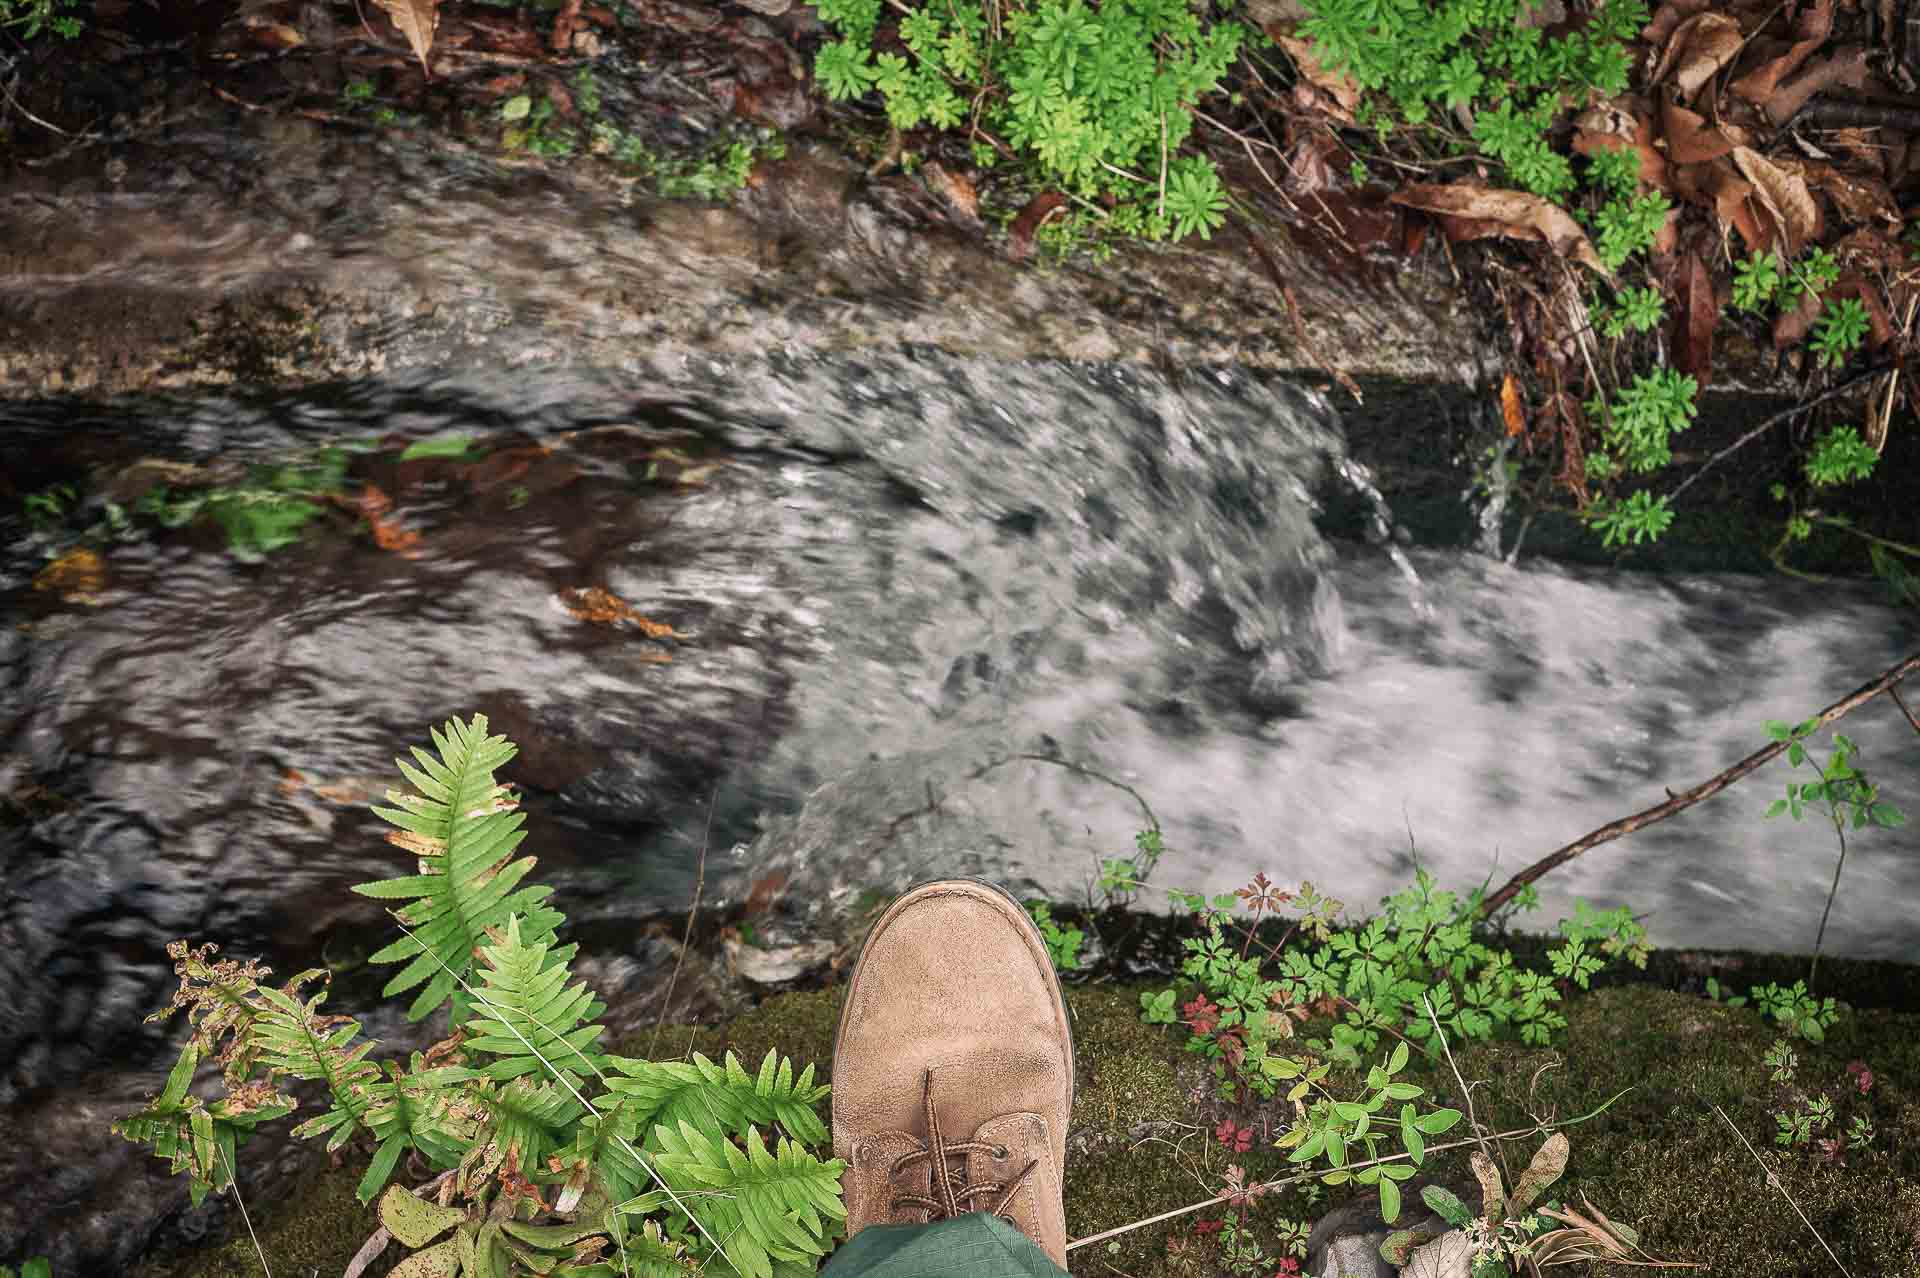 Exploring irrigation cannel